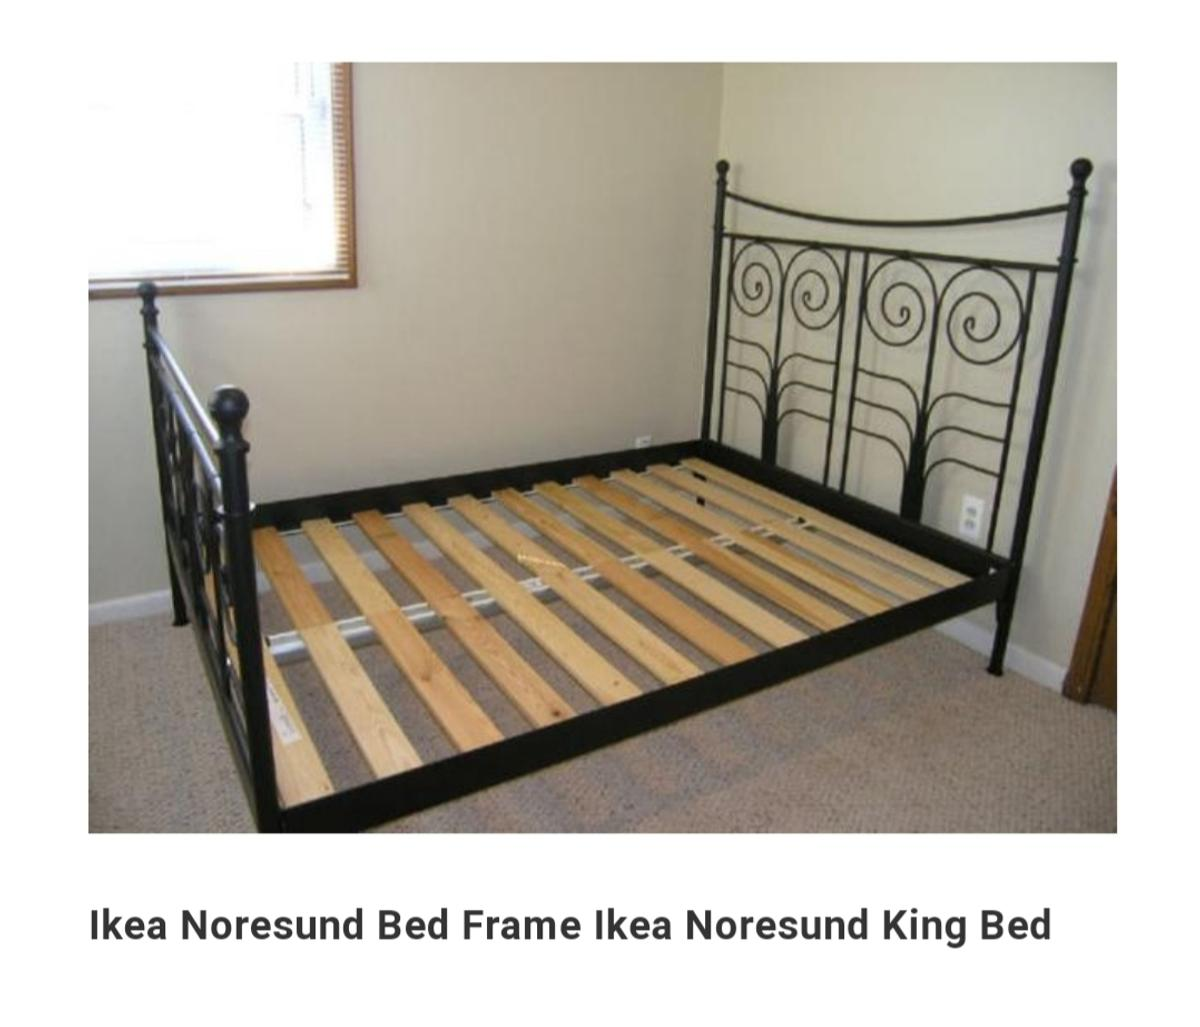 Ikea King Size Noresund Bedframe In Ss9 Sea For 75 00 For Sale Shpock